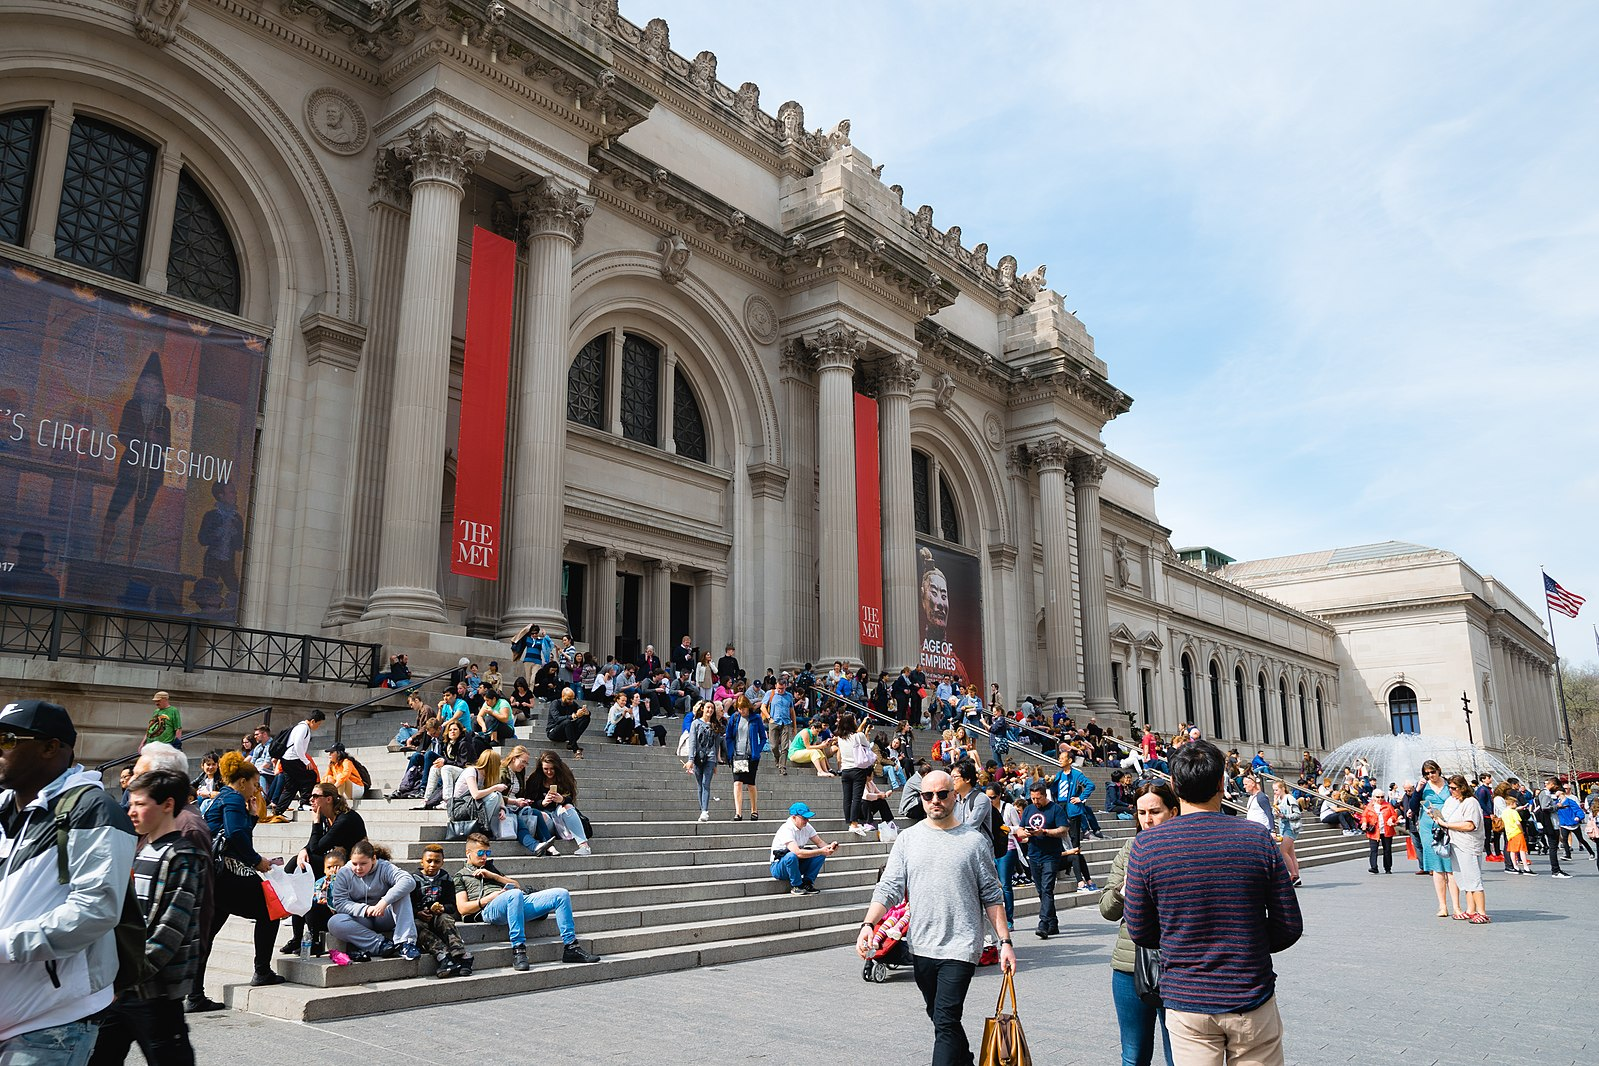 The Metropolitan Museum of Art,  Kai Pilger :  https://commons.wikimedia.org/wiki/File:The_MET.jpg  This file is licensed by  Creative Commons   Attribution-Share Alike 4.0 International .